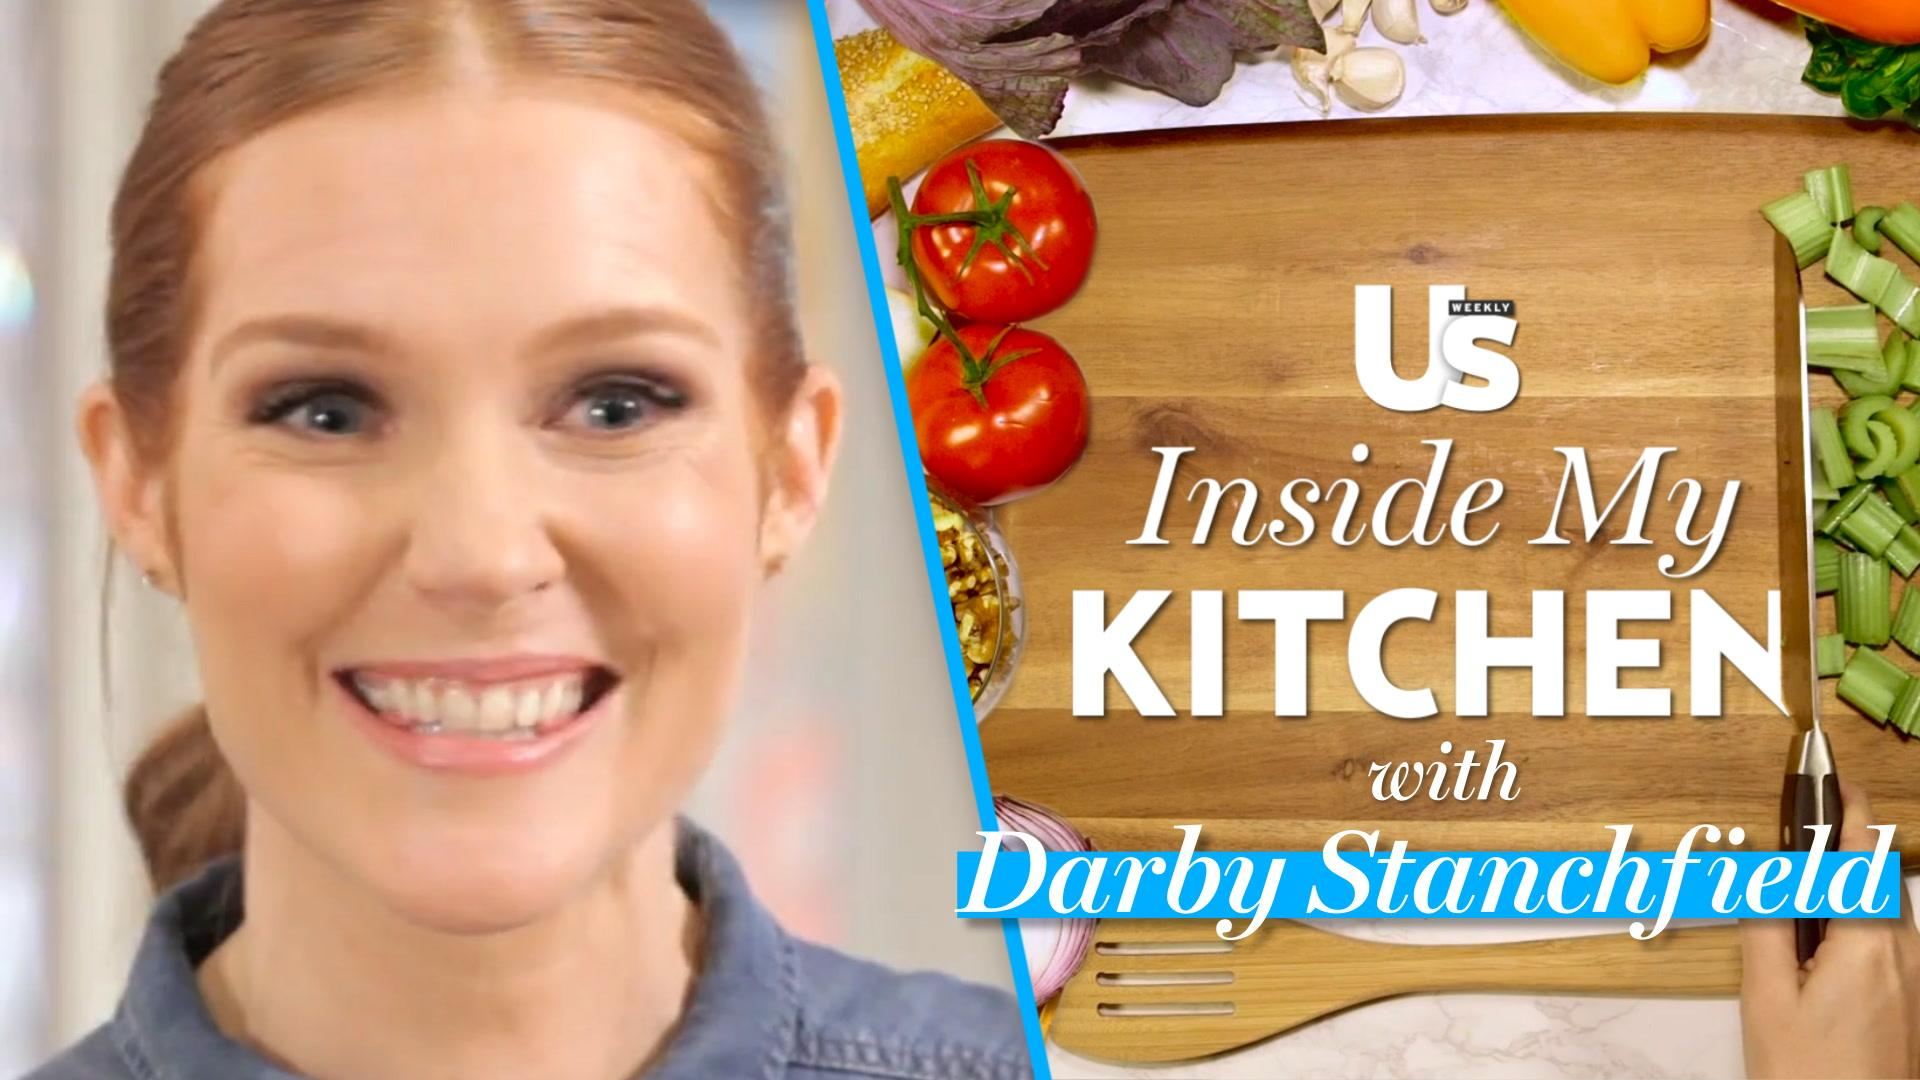 Inside My Kitchen With Darby Stanchfield